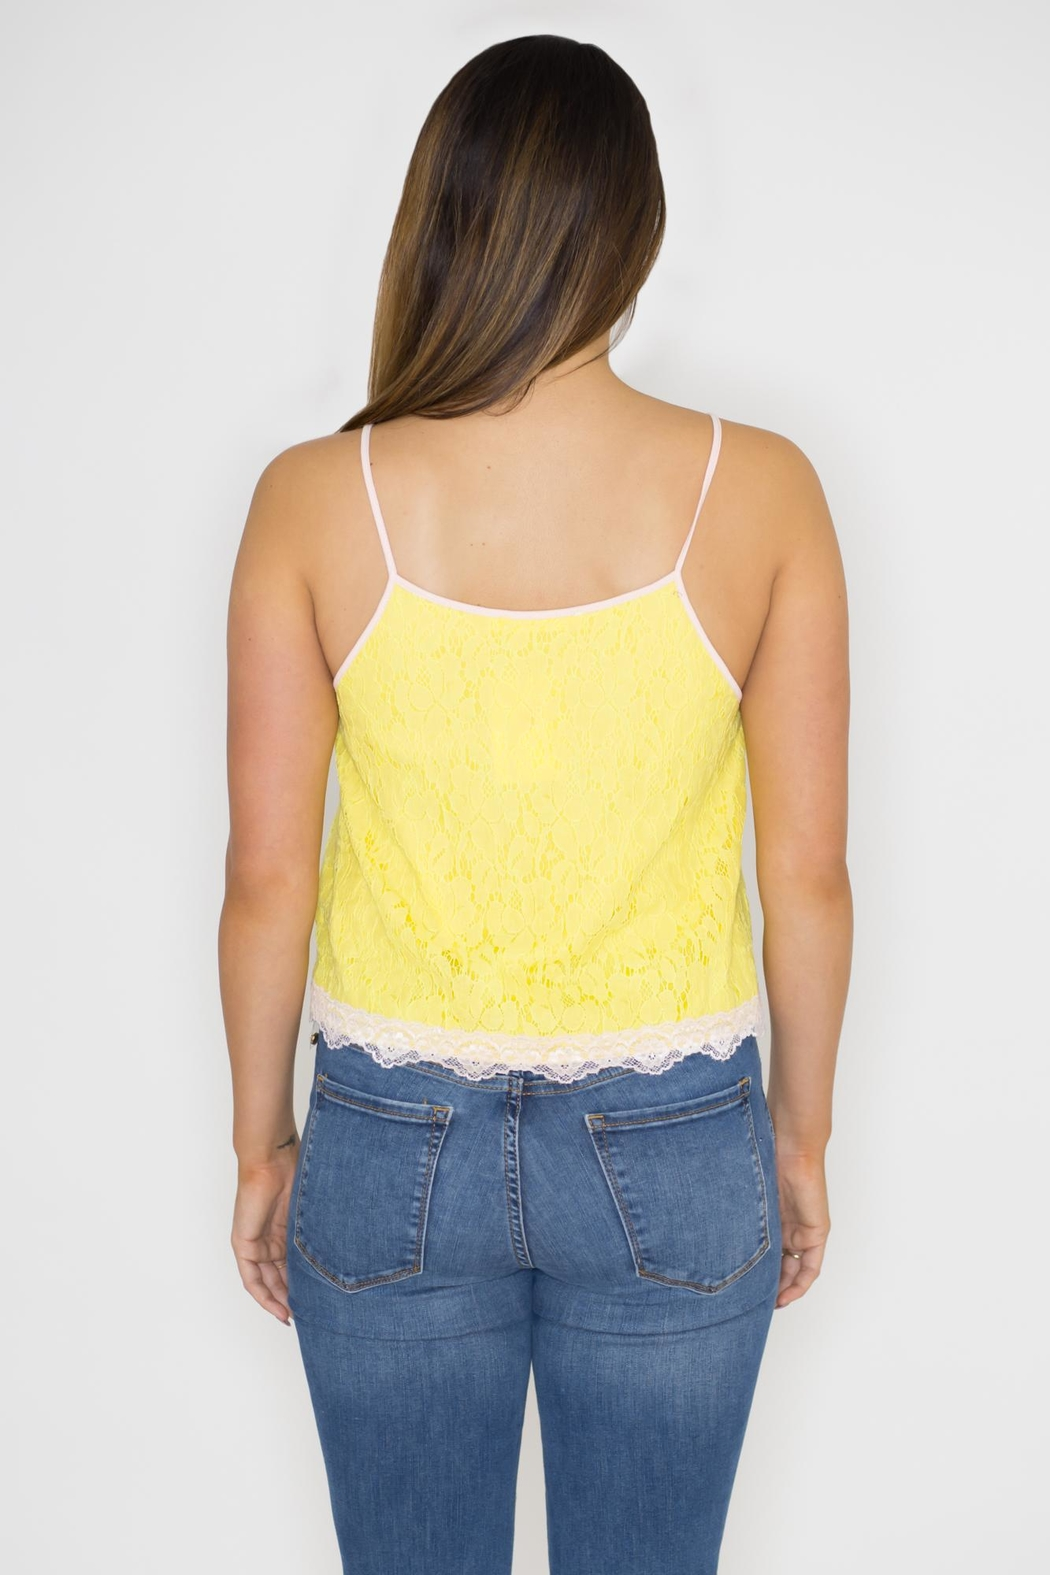 Machine Jeans Yellow Lace Overlay Top - Side Cropped Image